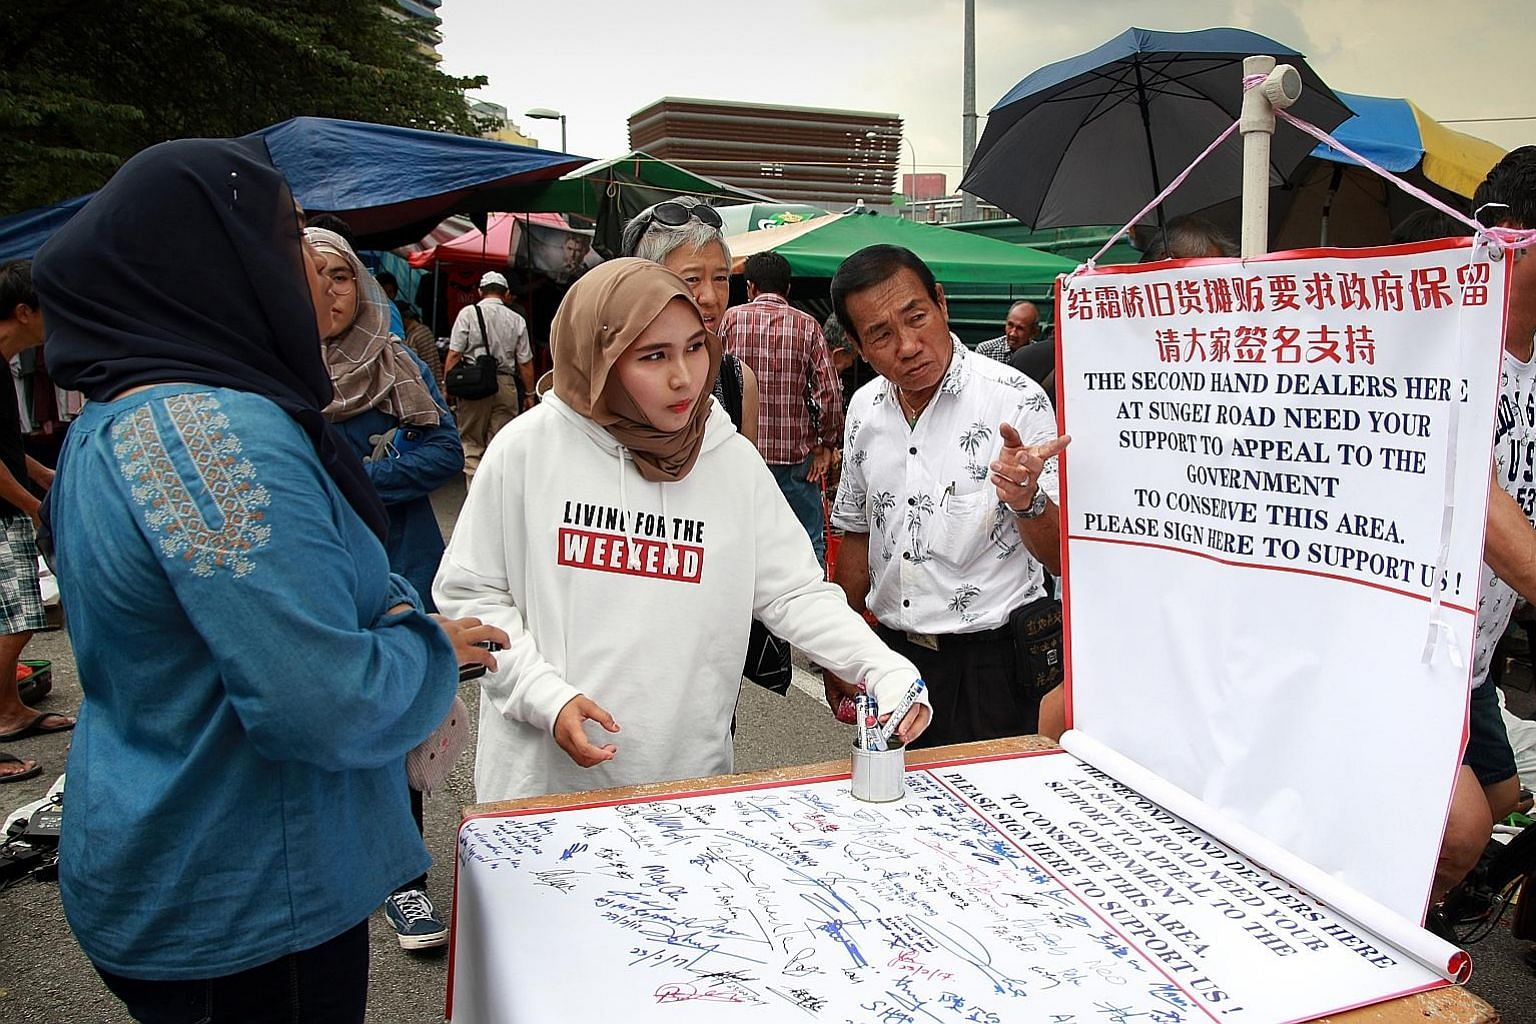 Earlier this year, signatures were collected for the purpose of appealing to the Government to review its decision to shut down the Sungei Road market.